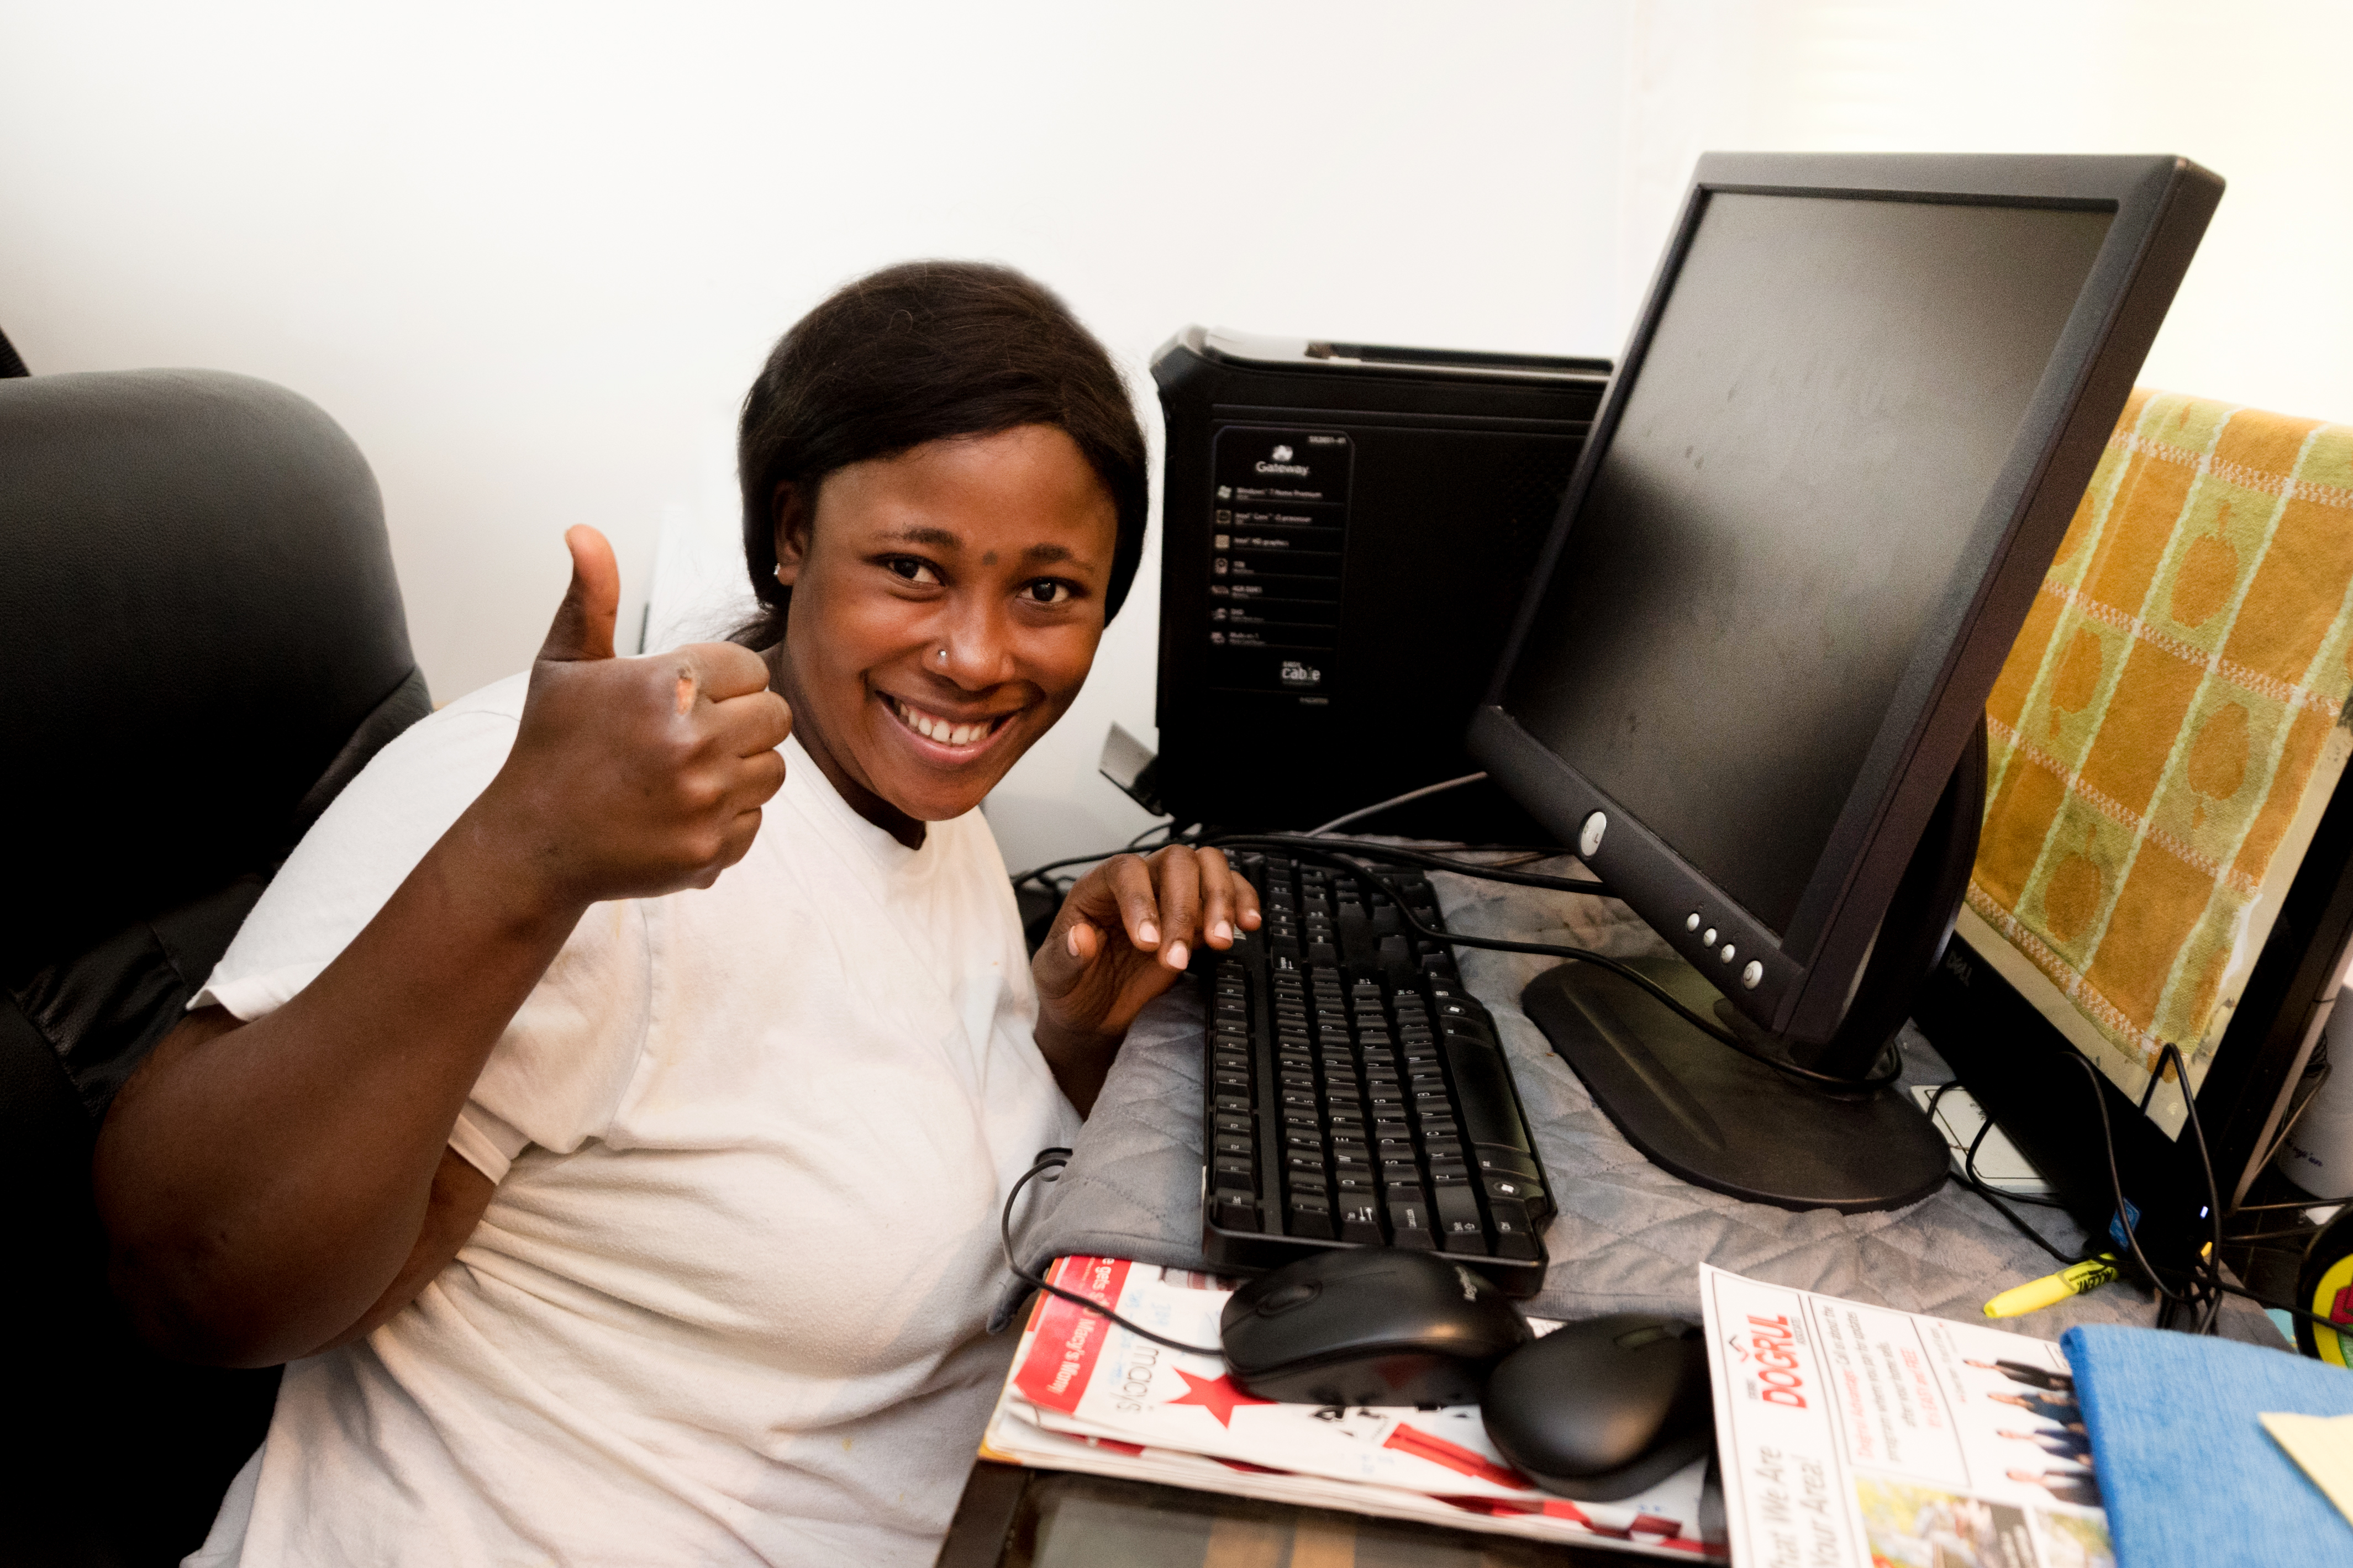 Annandale High grad Fatima Kamara, who plans to study nursing at Northern Virginia Community College's honors program in the fall, gets to keep the desktop she built for use in college.